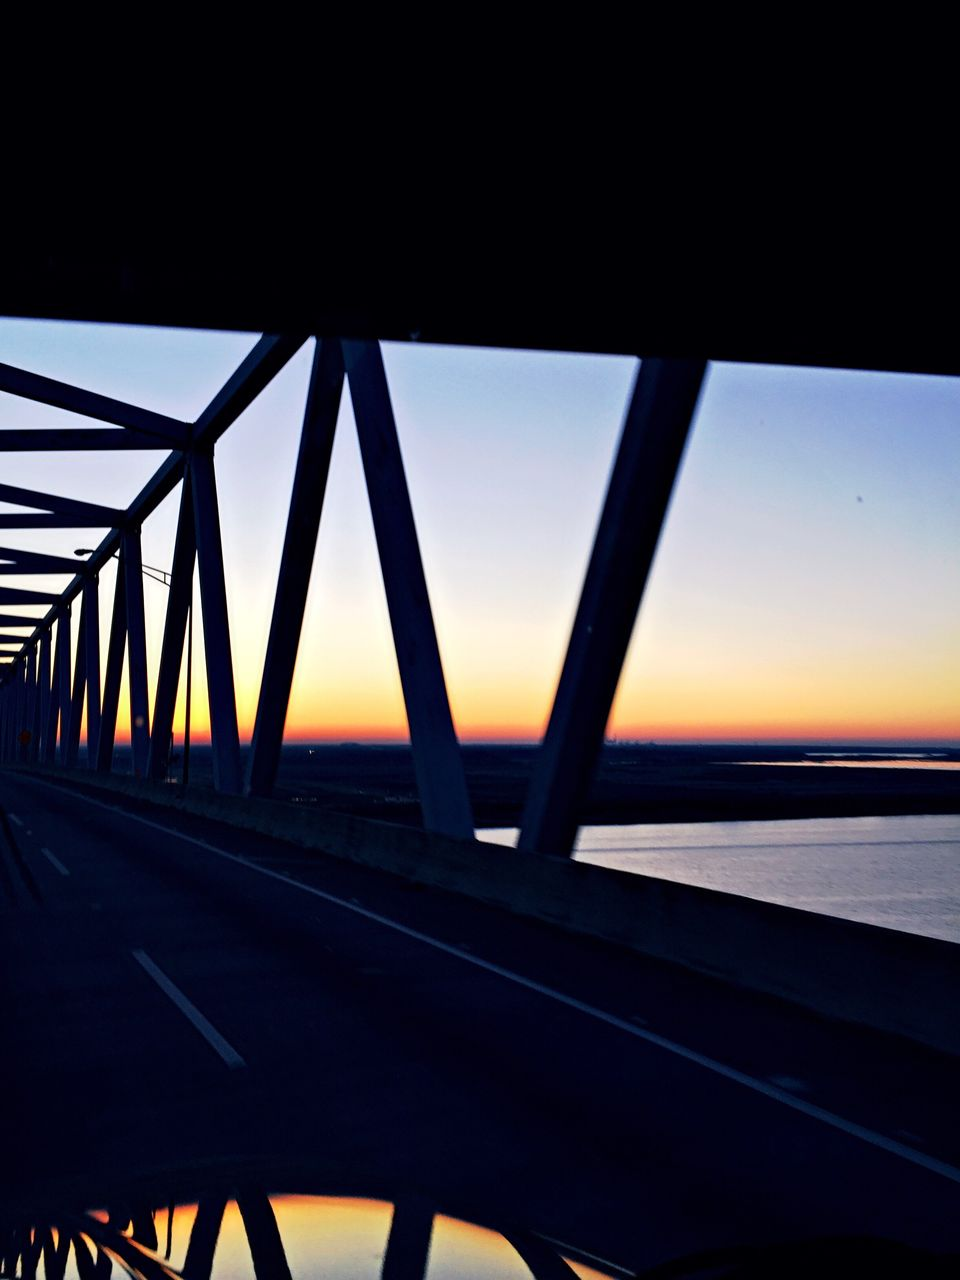 sunset, transportation, bridge - man made structure, sky, road, no people, built structure, outdoors, nature, water, day, architecture, close-up